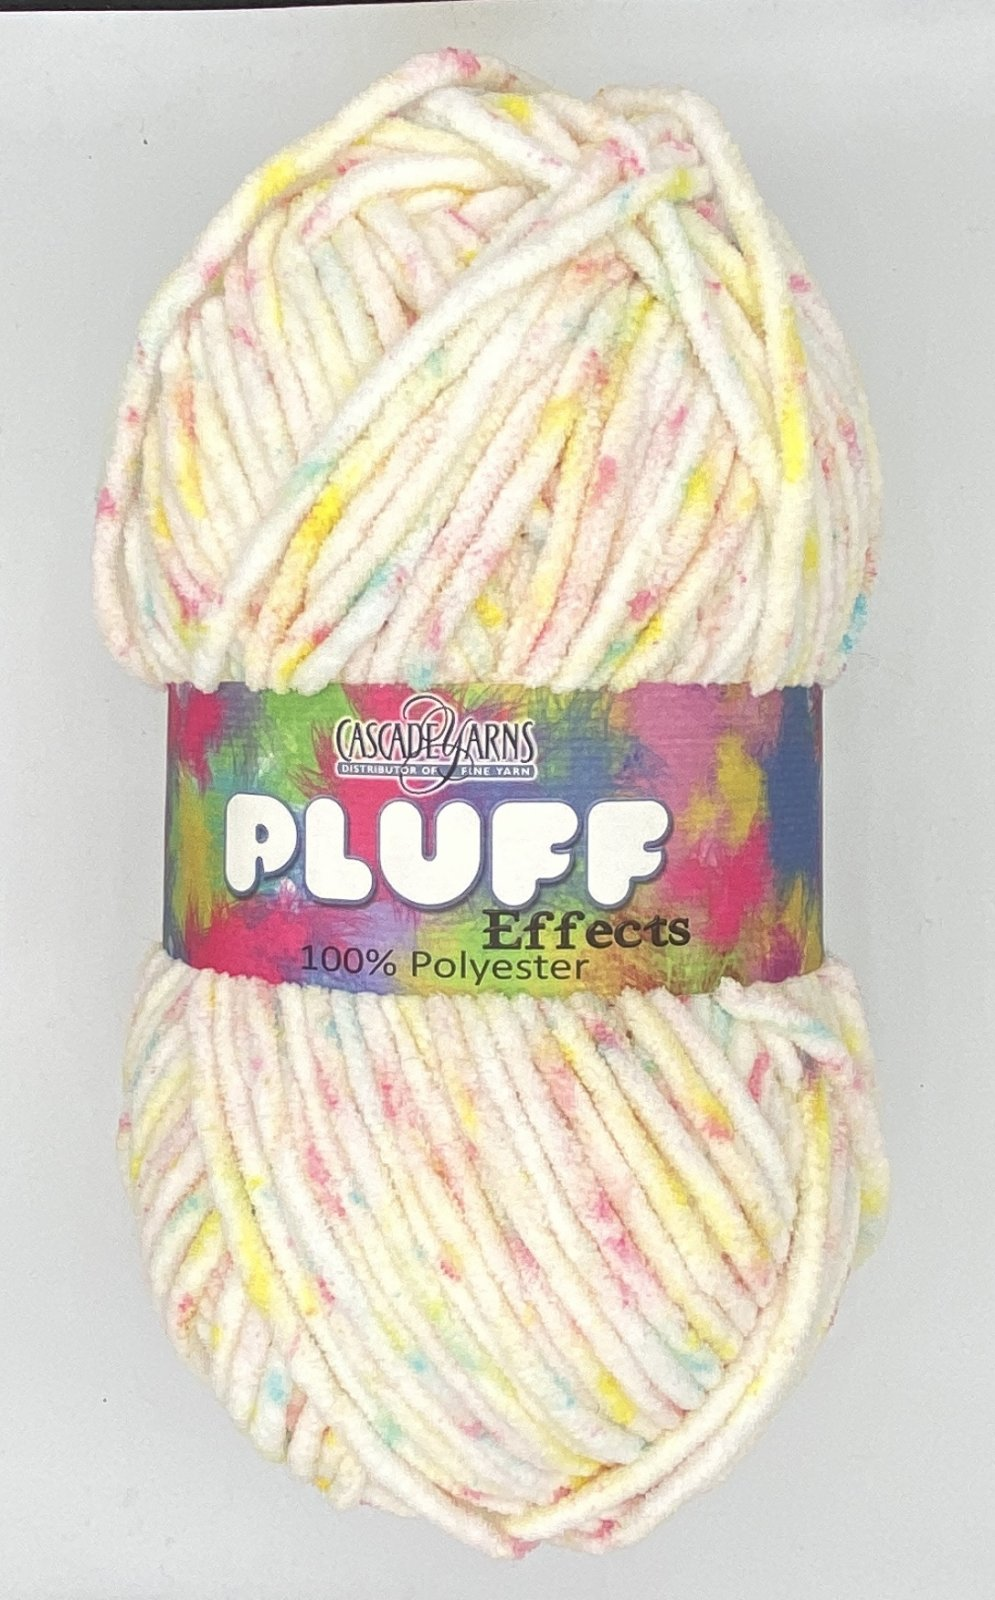 Pluff Effects